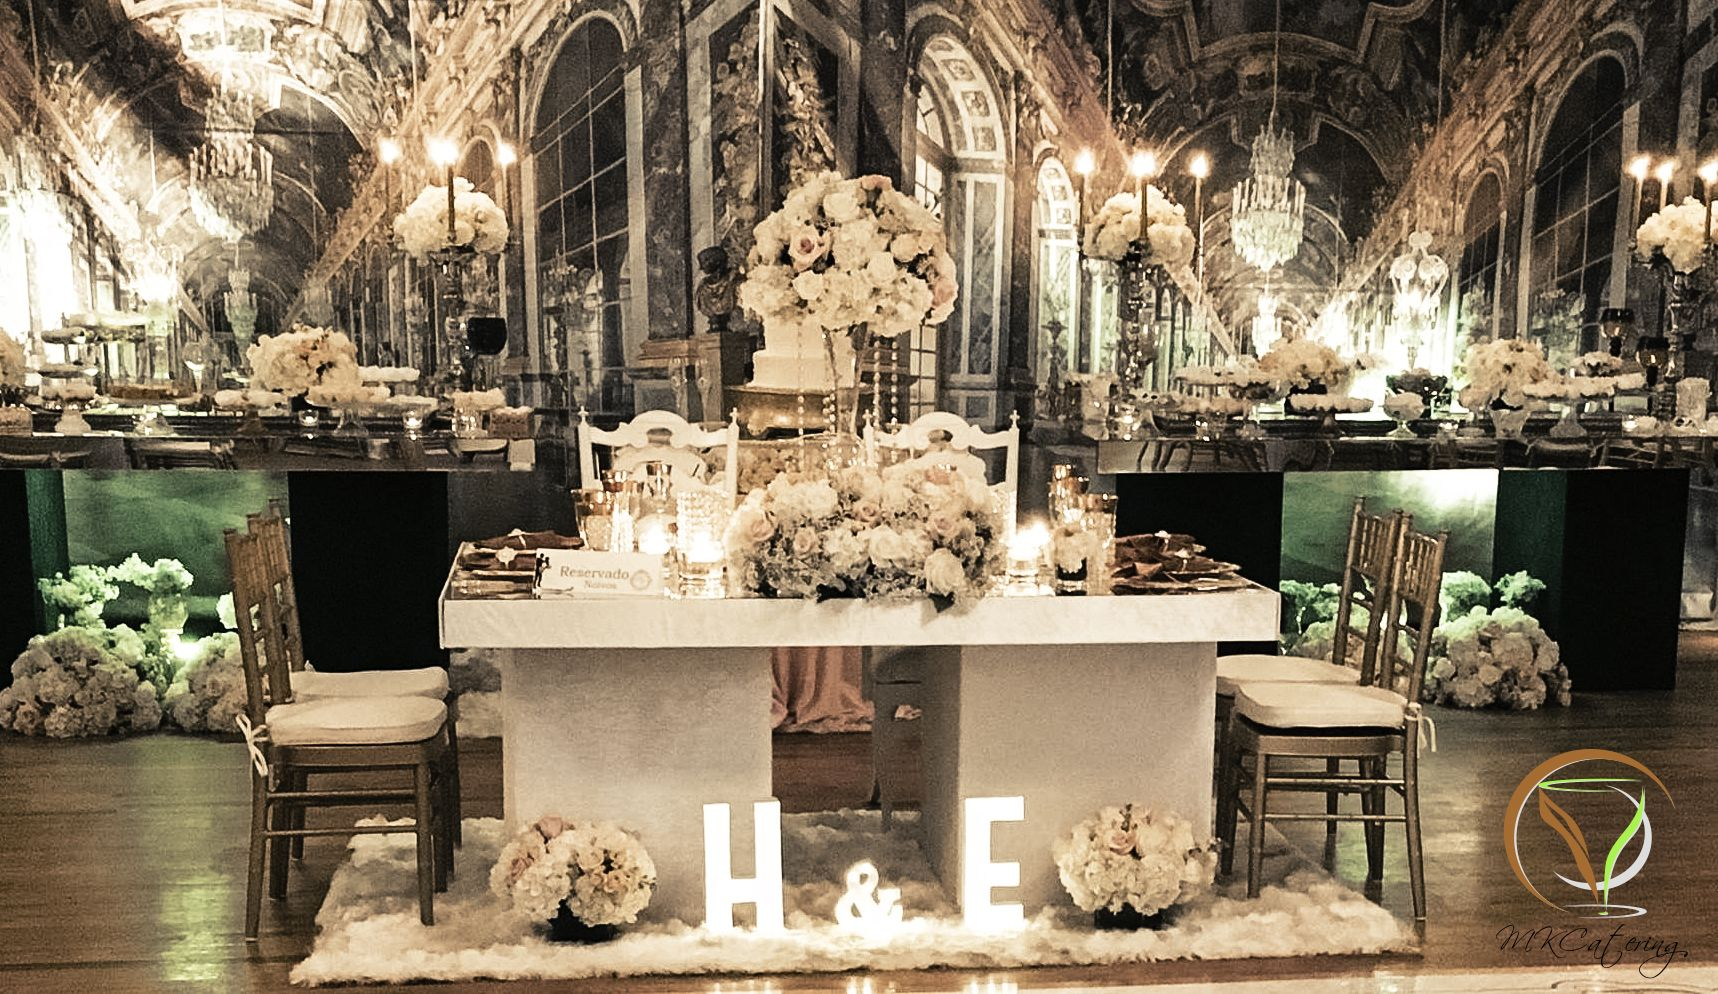 Wedding decor images  Wedding Decor by MK Catering and our Weding Planner  Weddings